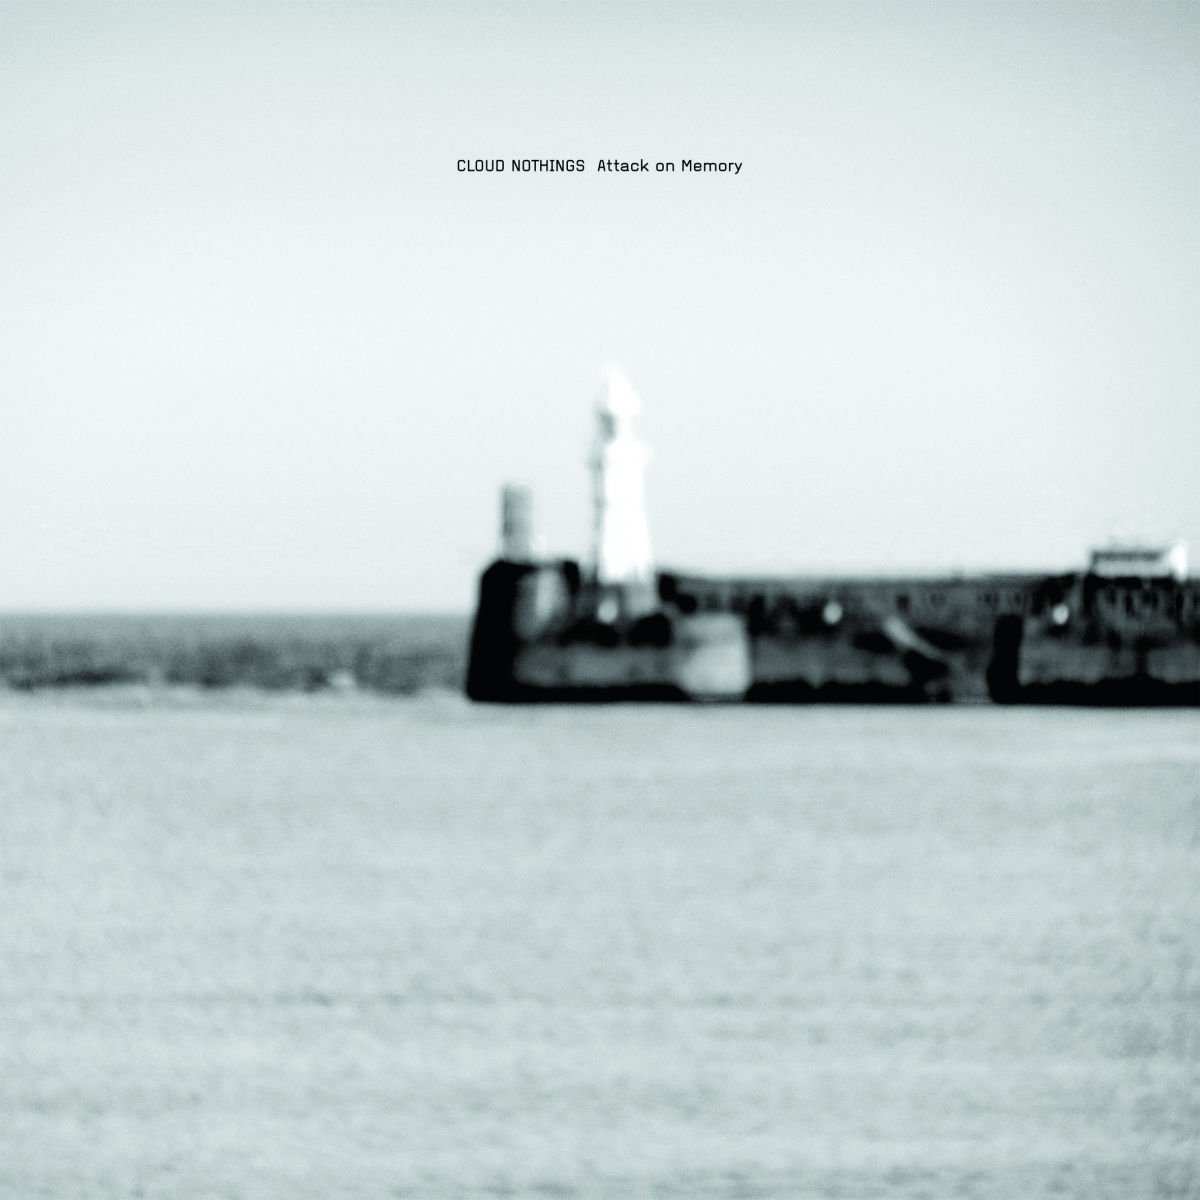 CLOUD NOTHINGS - Attack on Memory - Amazon.com Music